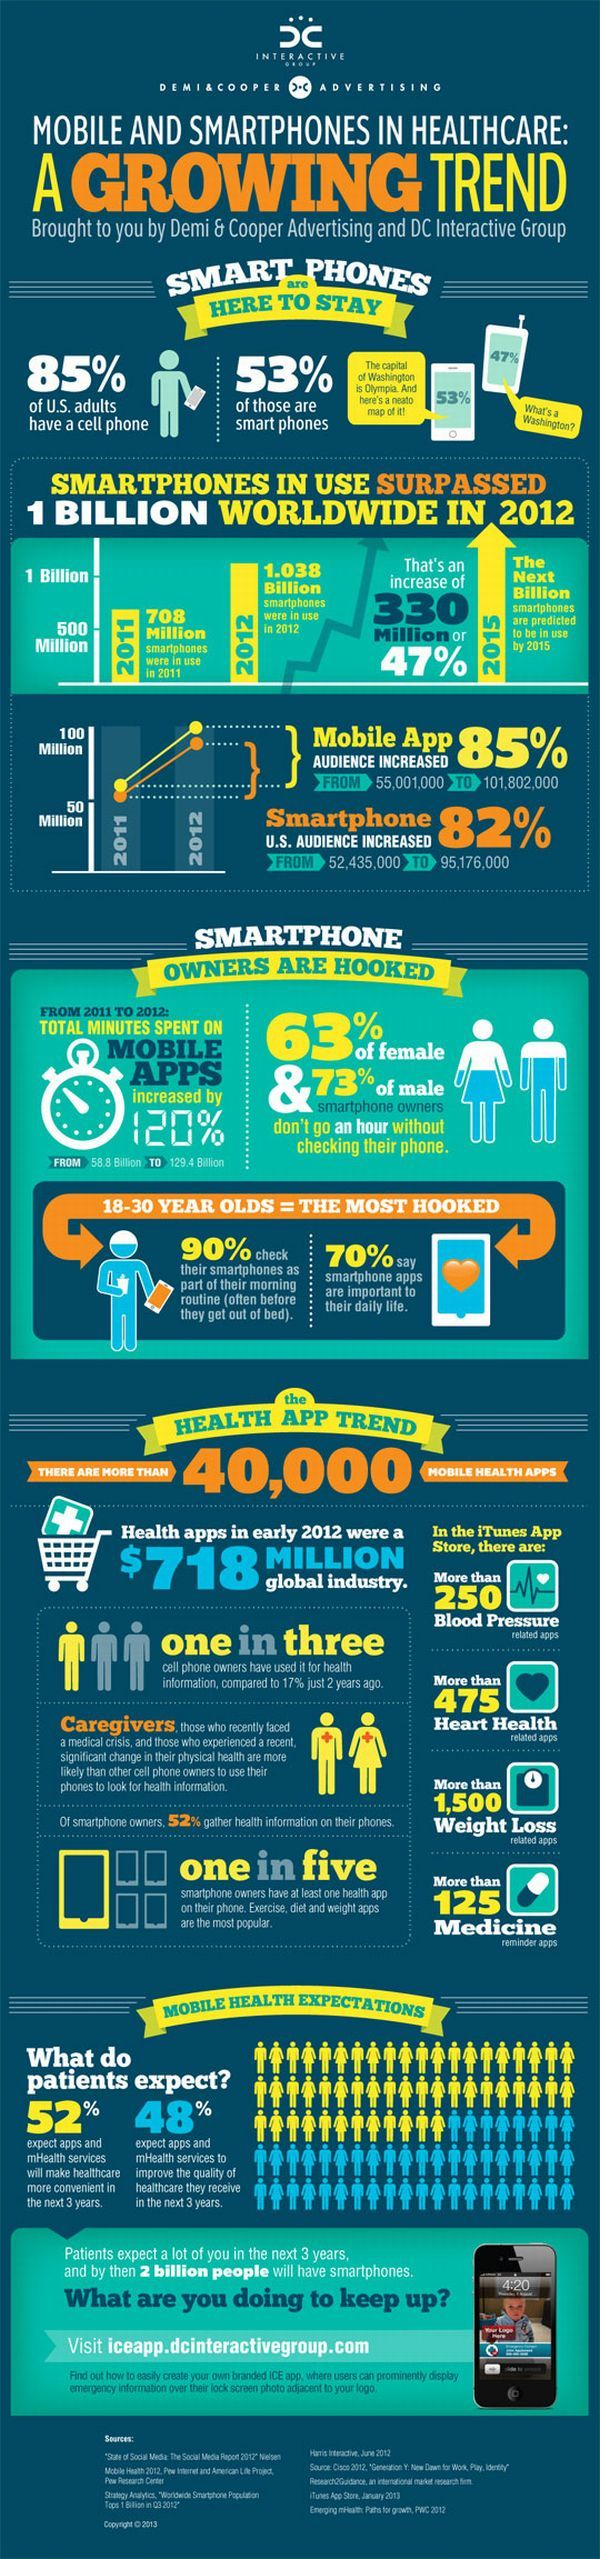 With the skyrocketing of smartphone use, #mhealth apps and patient involvement in care, patients will be expecting a lot of providers in the next 3 years. | Mobile and smartphones in healthcare: a growing trend #Infographic via @Helena Loi Smith Care